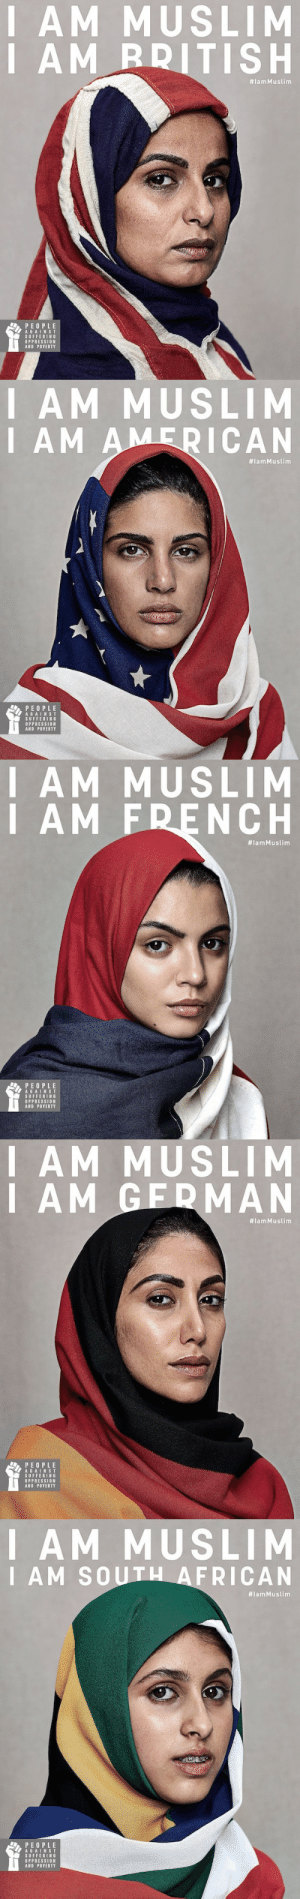 muslame:  micdotcom:  Love these.NativeVML teamed with People Against Suffering Oppression and Poverty to create the images — and are hoping to inspire a response all around the world.  Looking at the replies to this post is a pretty accurate representation of how people still equate being Muslim to being from a certain country. : I AM MUSLIM  AM RDITISH  #lamMuslim  PE OPLE  AGAIN S T  SUFFERING  OPPRESSION  AND POVERTY   I AM MUSLIM  I AM A  ICAN  #lamMuslim  PEOPLE  AGAINST  SUFFERING  OPPRESSION  AND POVERTY   AM MUSLIM  I AM FRENCH  #lamMuslim  PEOPLE  AGAINST  SUFFERING  OPPRESSIO瓮  AND POVERTY   AM MUSLIM  I A M  GEDMAN  #lamMuslim  SUFFERING  OPPRESSION  AND POVERTY   I AM MUSLIM  I AM SOU  AFRICAN  #lamMuslim  PEOPLE  AGAINST  SUFFERING  OPPRESSION  AND POVERTY muslame:  micdotcom:  Love these.NativeVML teamed with People Against Suffering Oppression and Poverty to create the images — and are hoping to inspire a response all around the world.  Looking at the replies to this post is a pretty accurate representation of how people still equate being Muslim to being from a certain country.